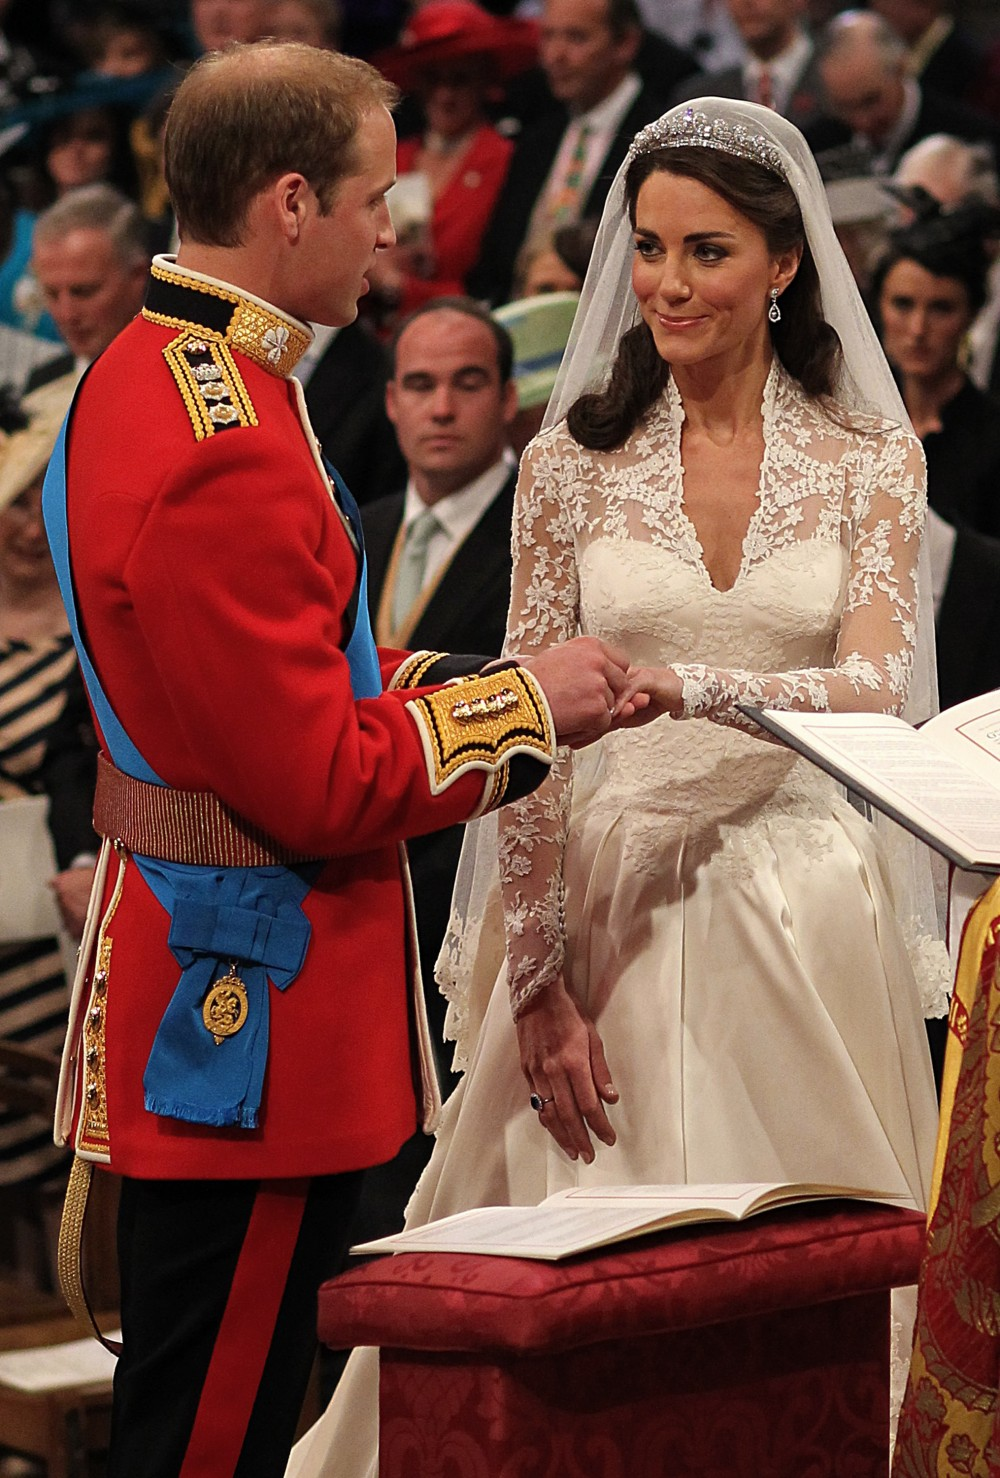 PrinCe William Amp Kate Middleton Wedding Pictures Dulha Amp Dulhan